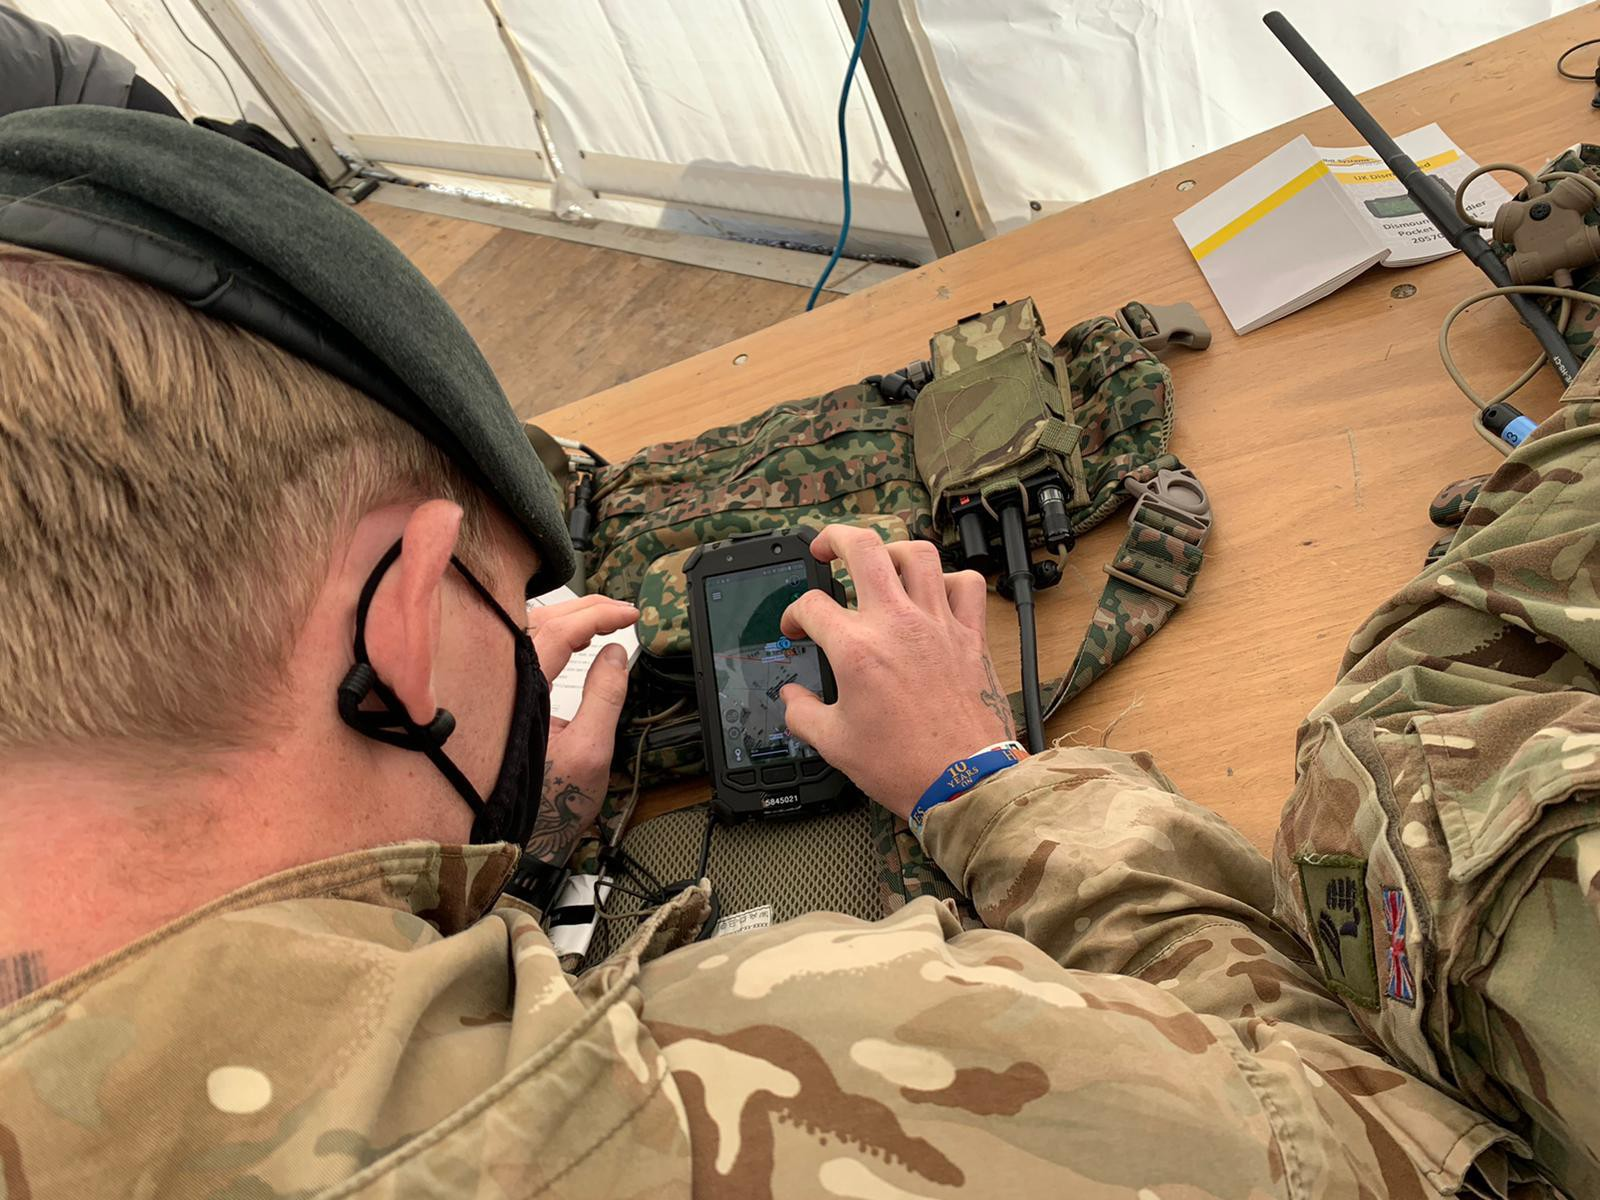 Soldier looking at a small mobile device and relaying that information back to other soldiers